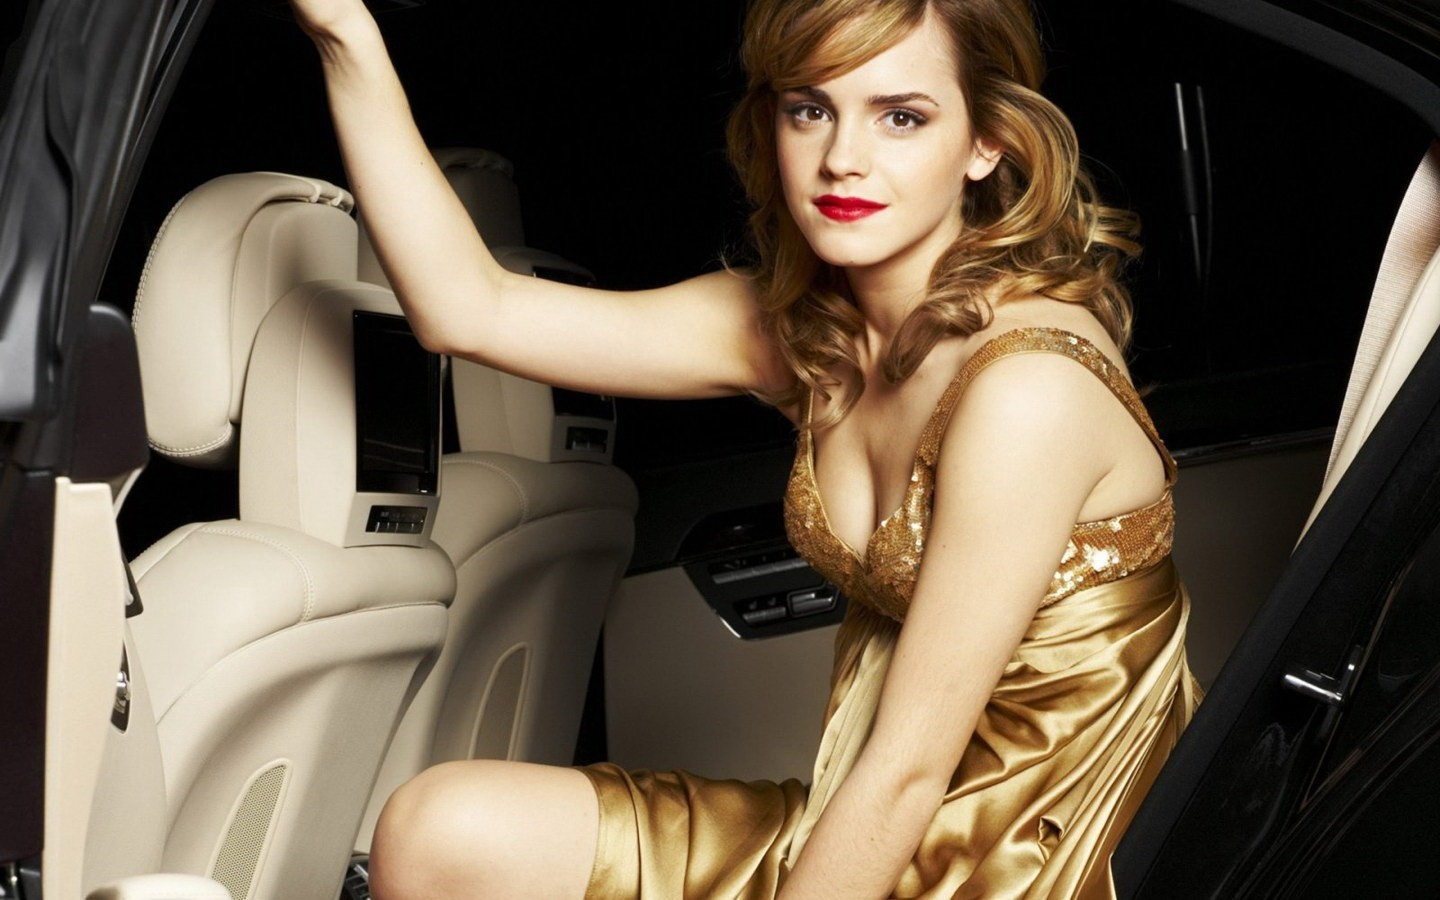 emma watson Actress HD Wallpaper